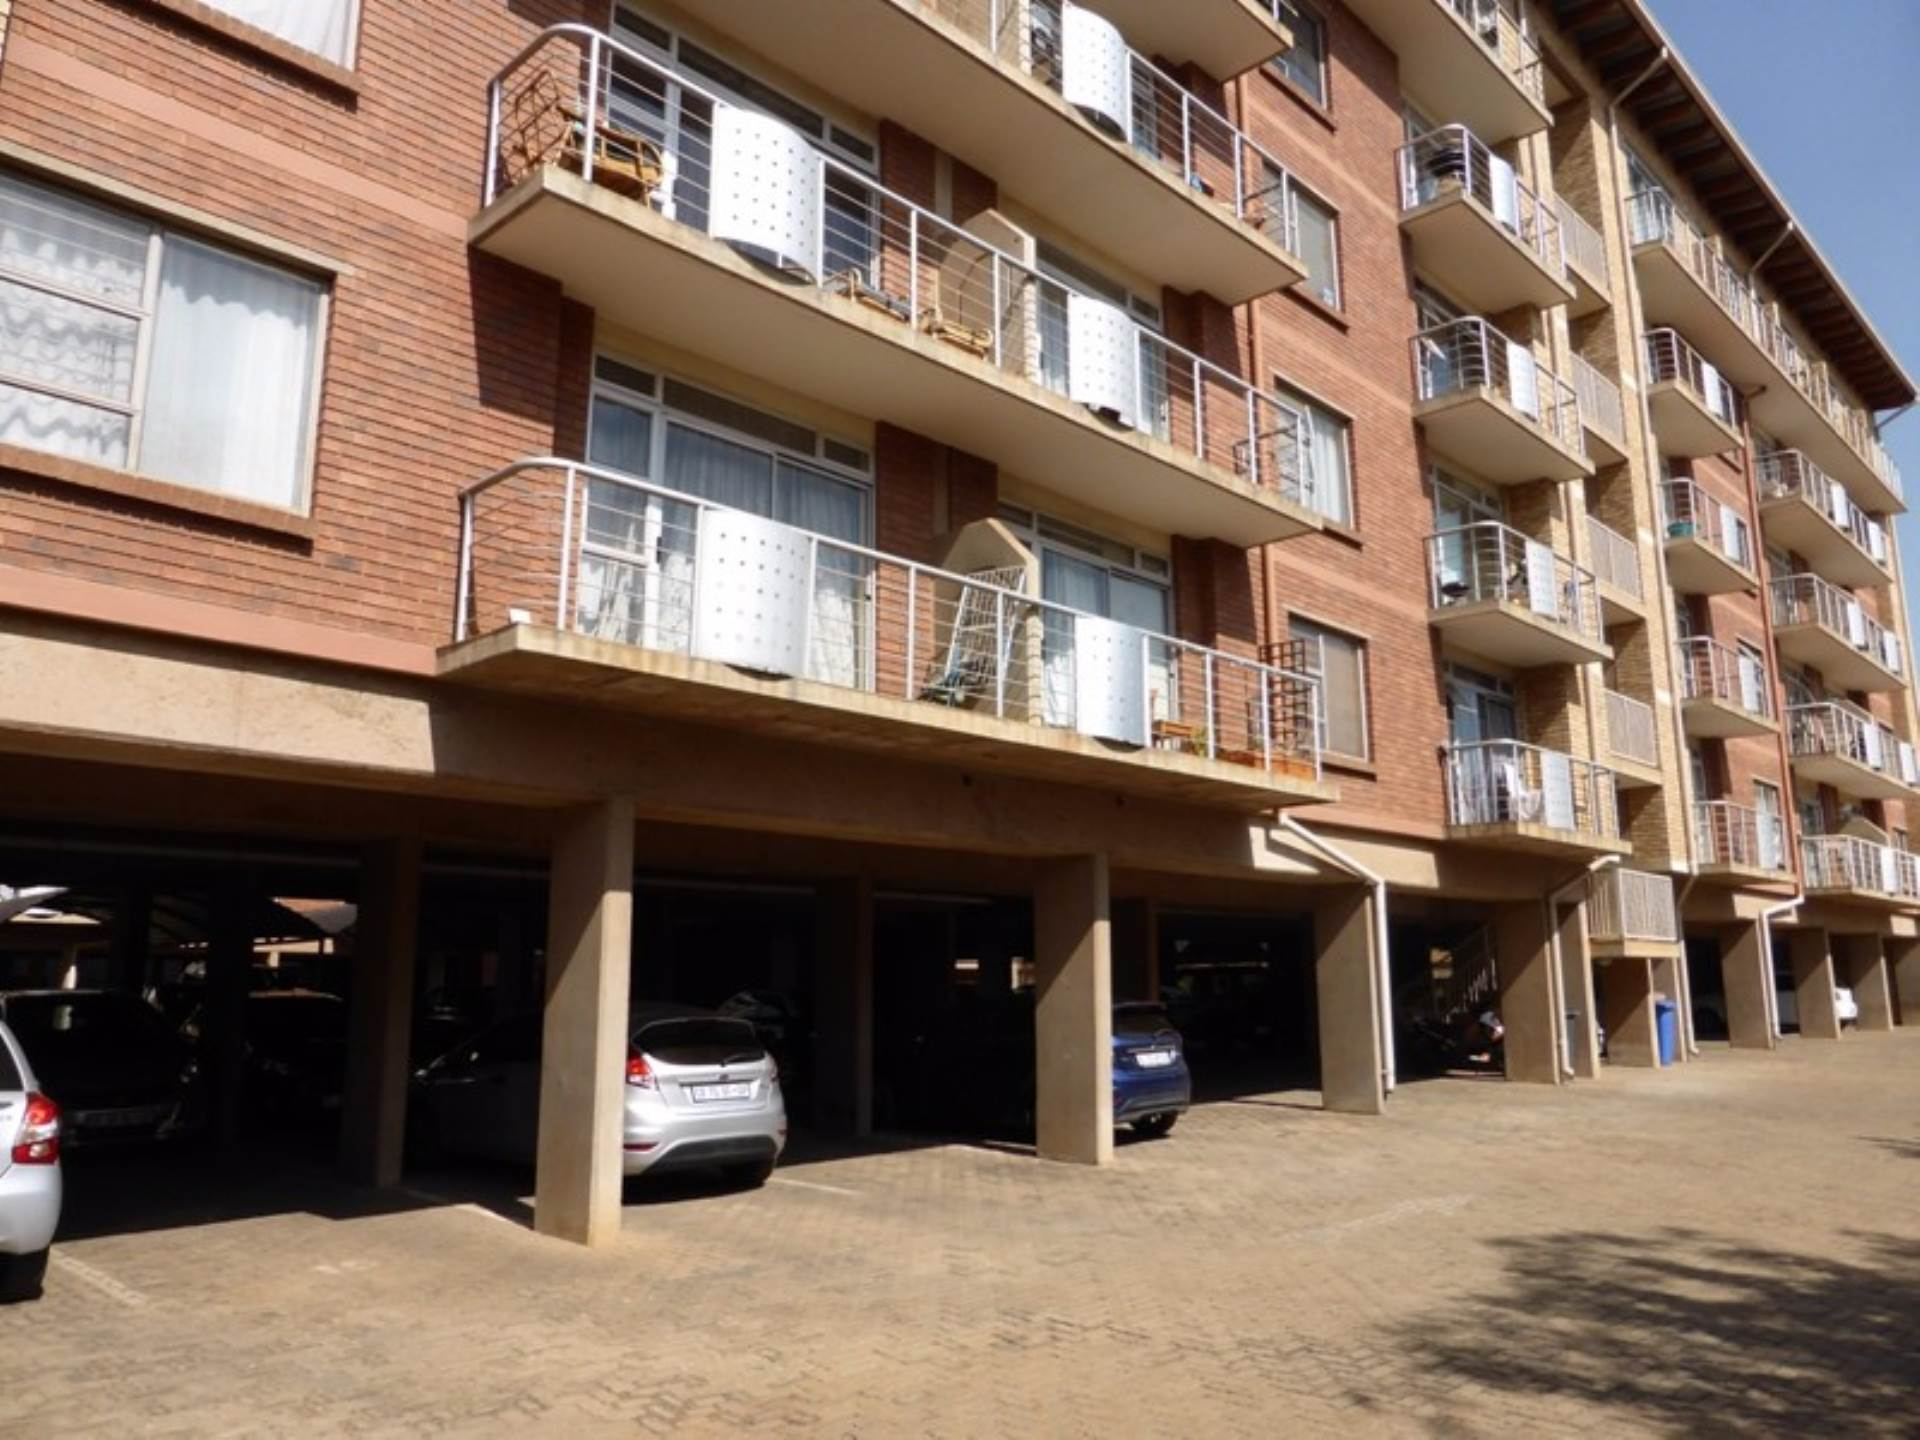 Pretoria, Hatfield Property  | Houses For Sale Hatfield, HATFIELD, Apartment 2 bedrooms property for sale Price:1,350,000